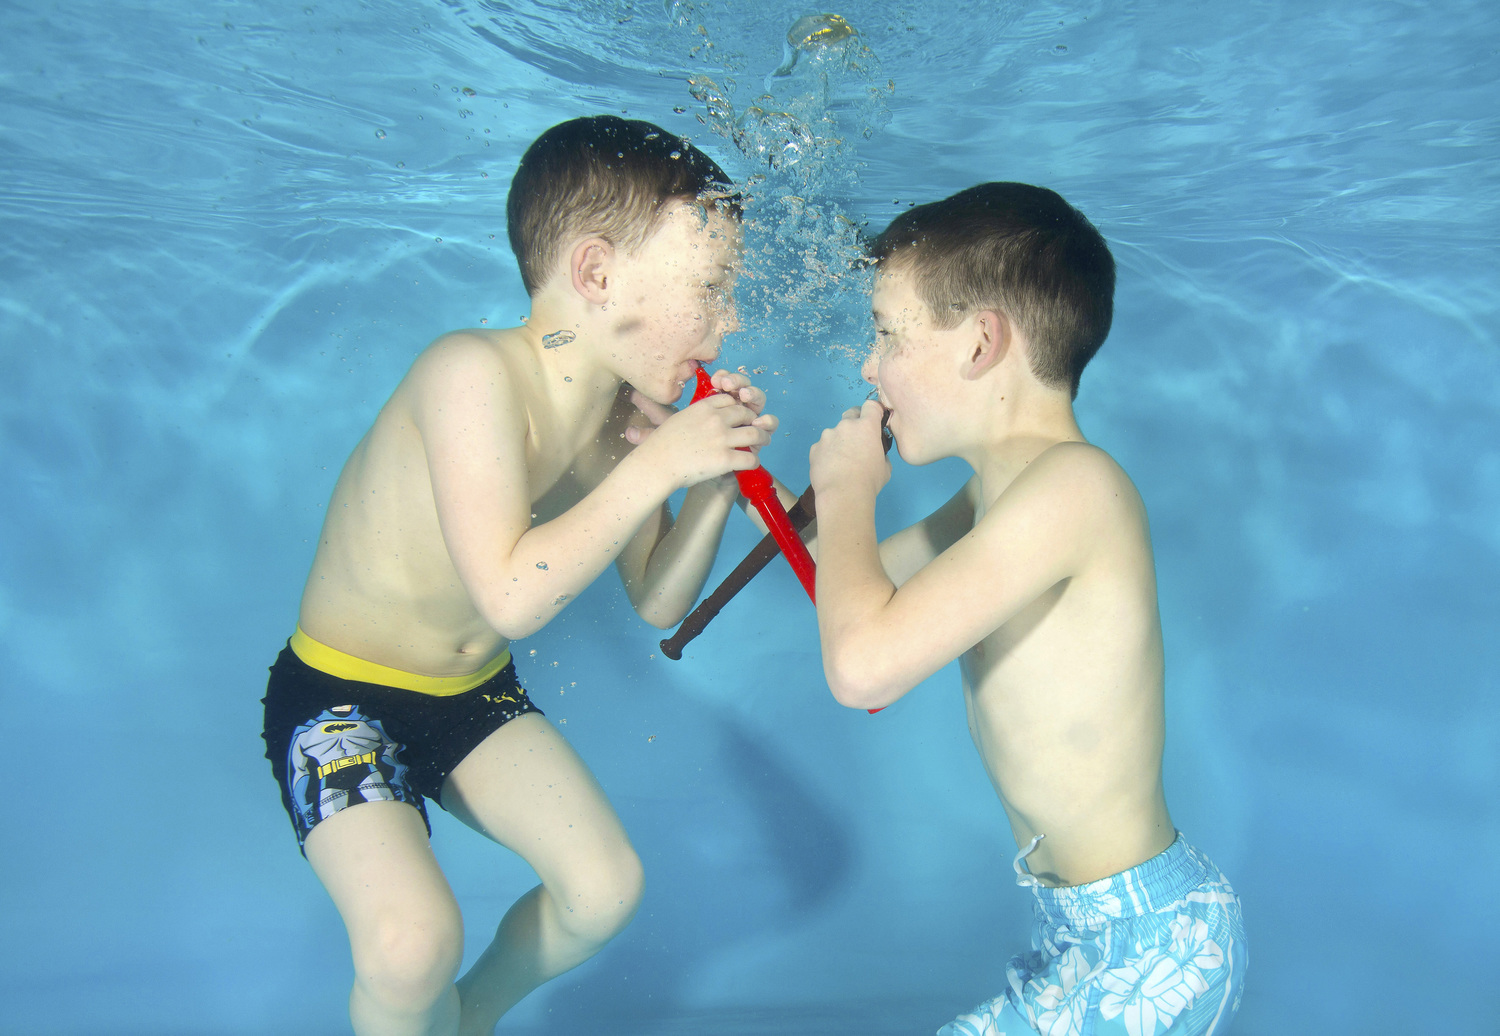 Brothers Harley Magee, 8 and Zack Magee, 6, play  underwater recorders at a Starfish Underwater Photography photo shoot with Tadpole Tots swim school, in Farnham, Surrey.  Starfish Underwater Photography holds underwater photo shoots in many locations around England. All babies and children taking part have practiced underwater submersions and are taking swimming lessons.   Photo by Lucy Ray/www.starfishunderwaterphotography.com